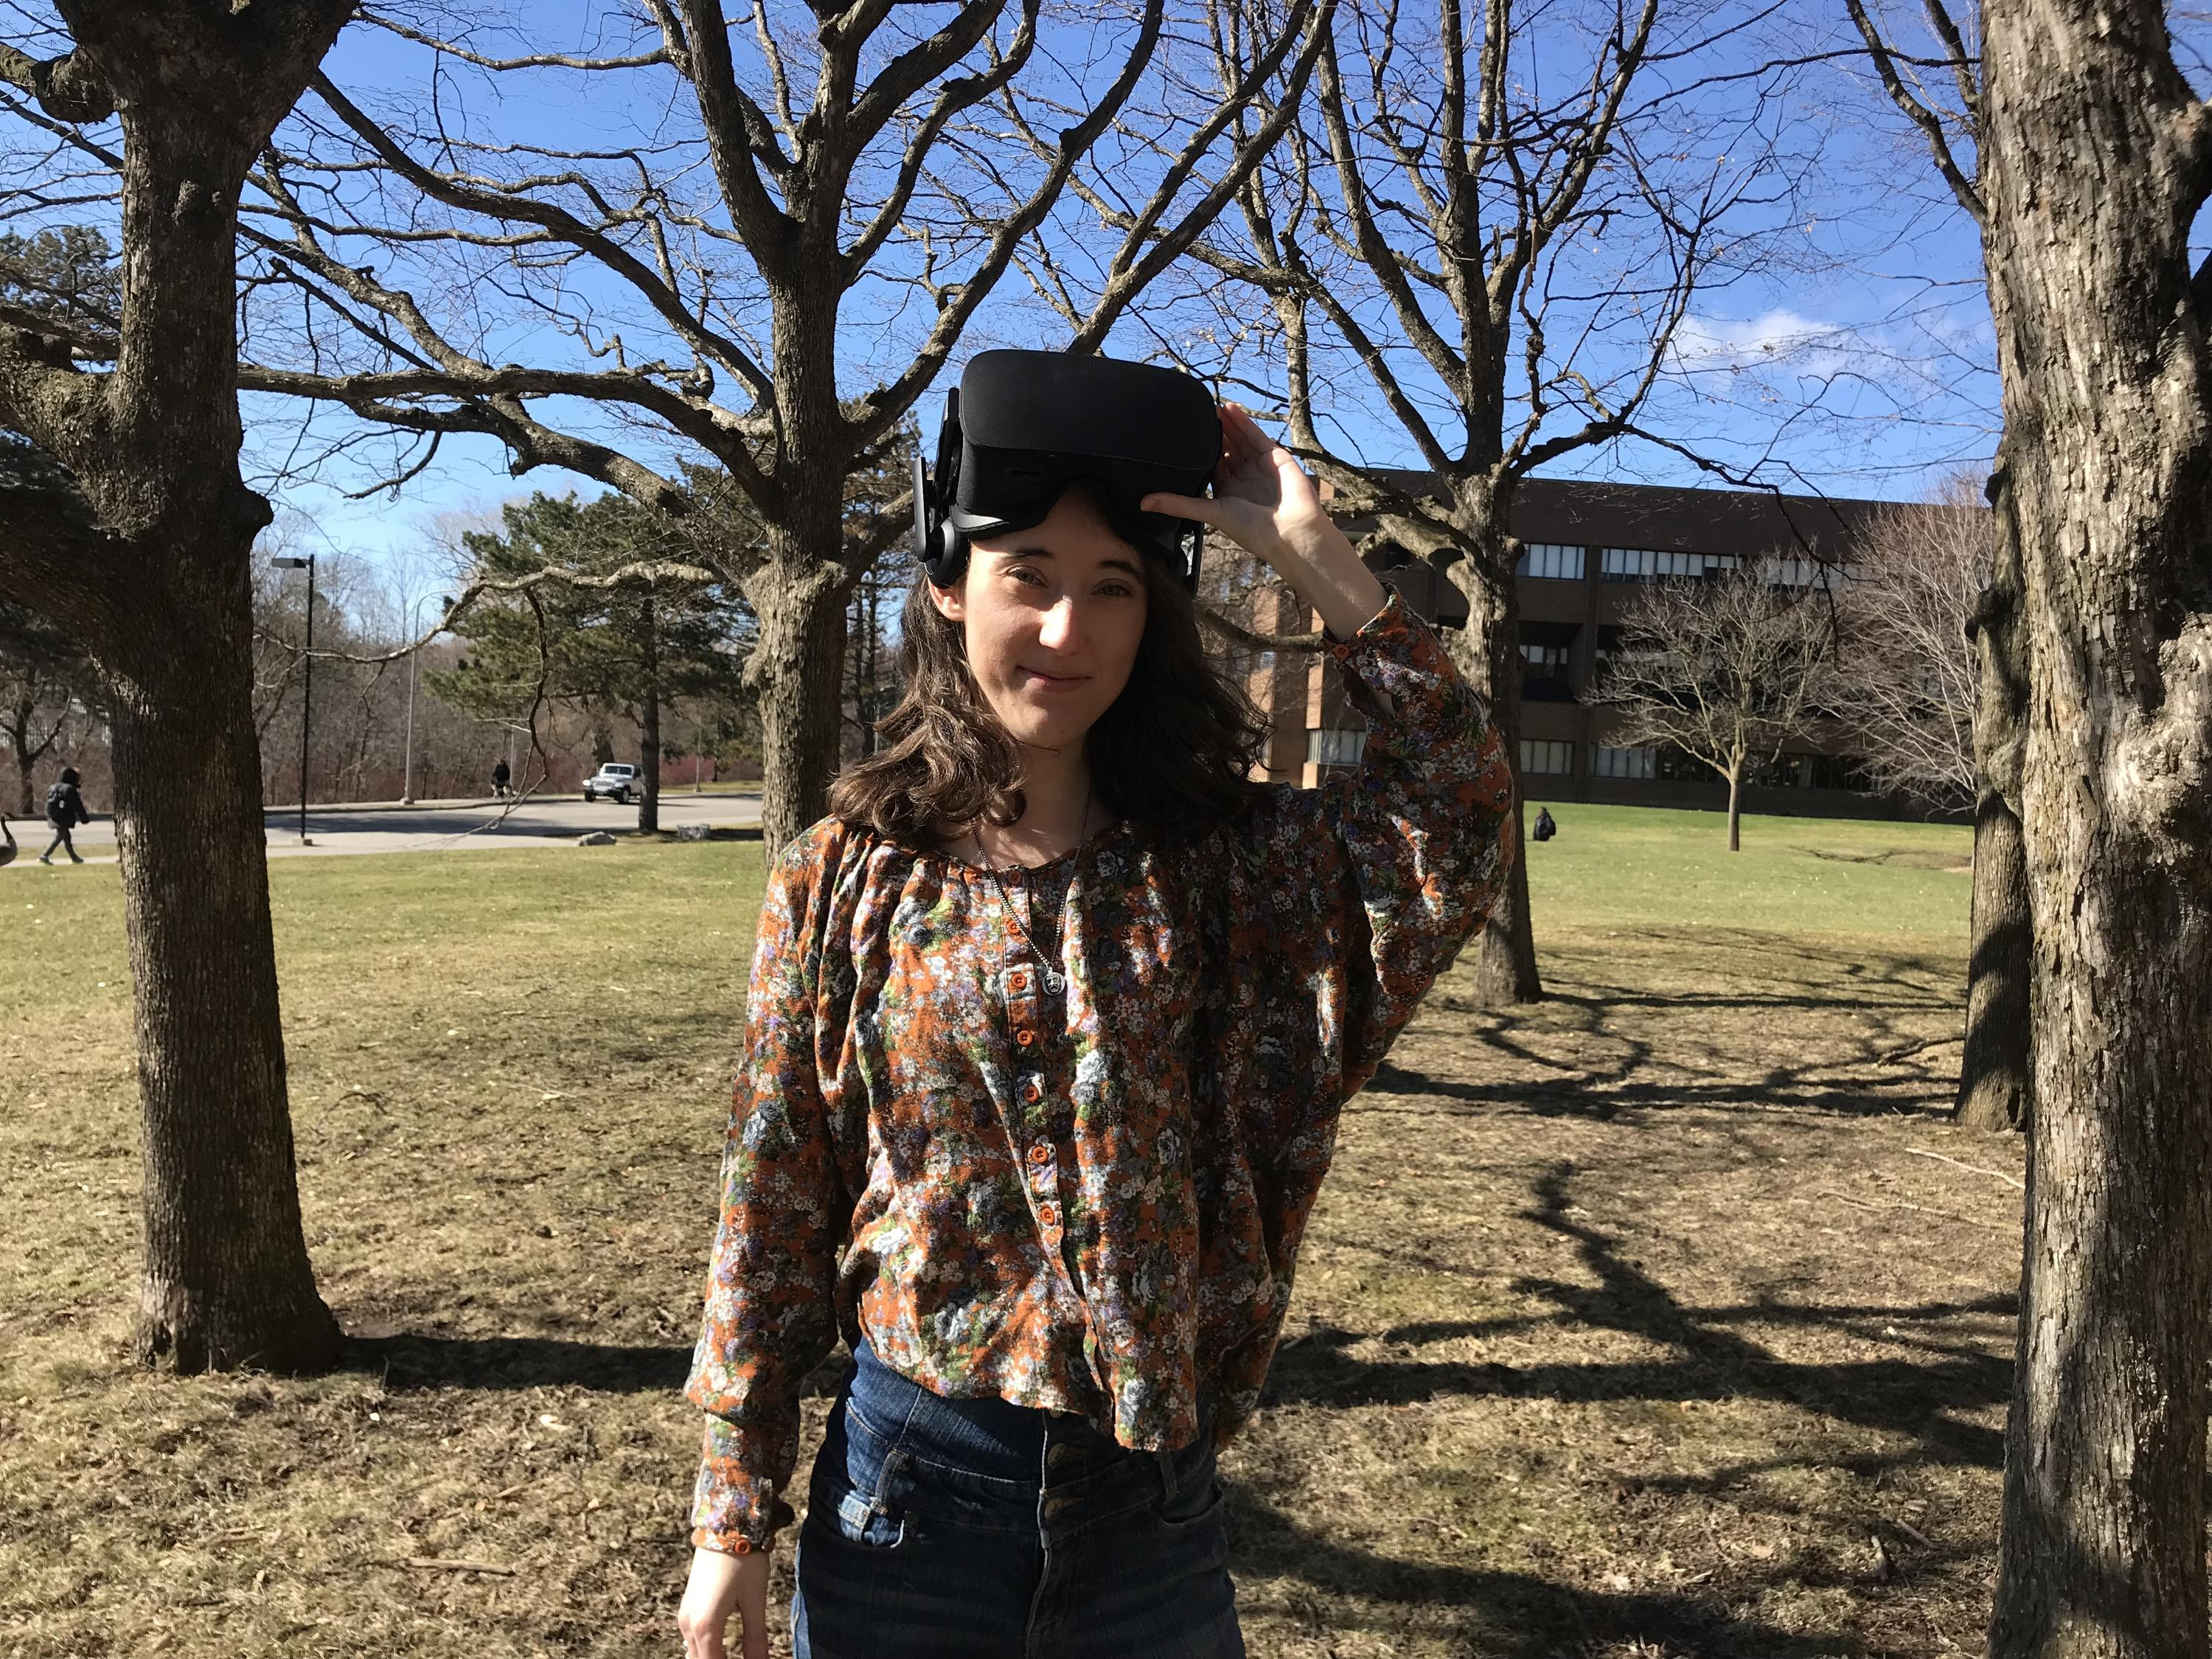 Jessica Bertrand outside in a stand of trees with VR goggles